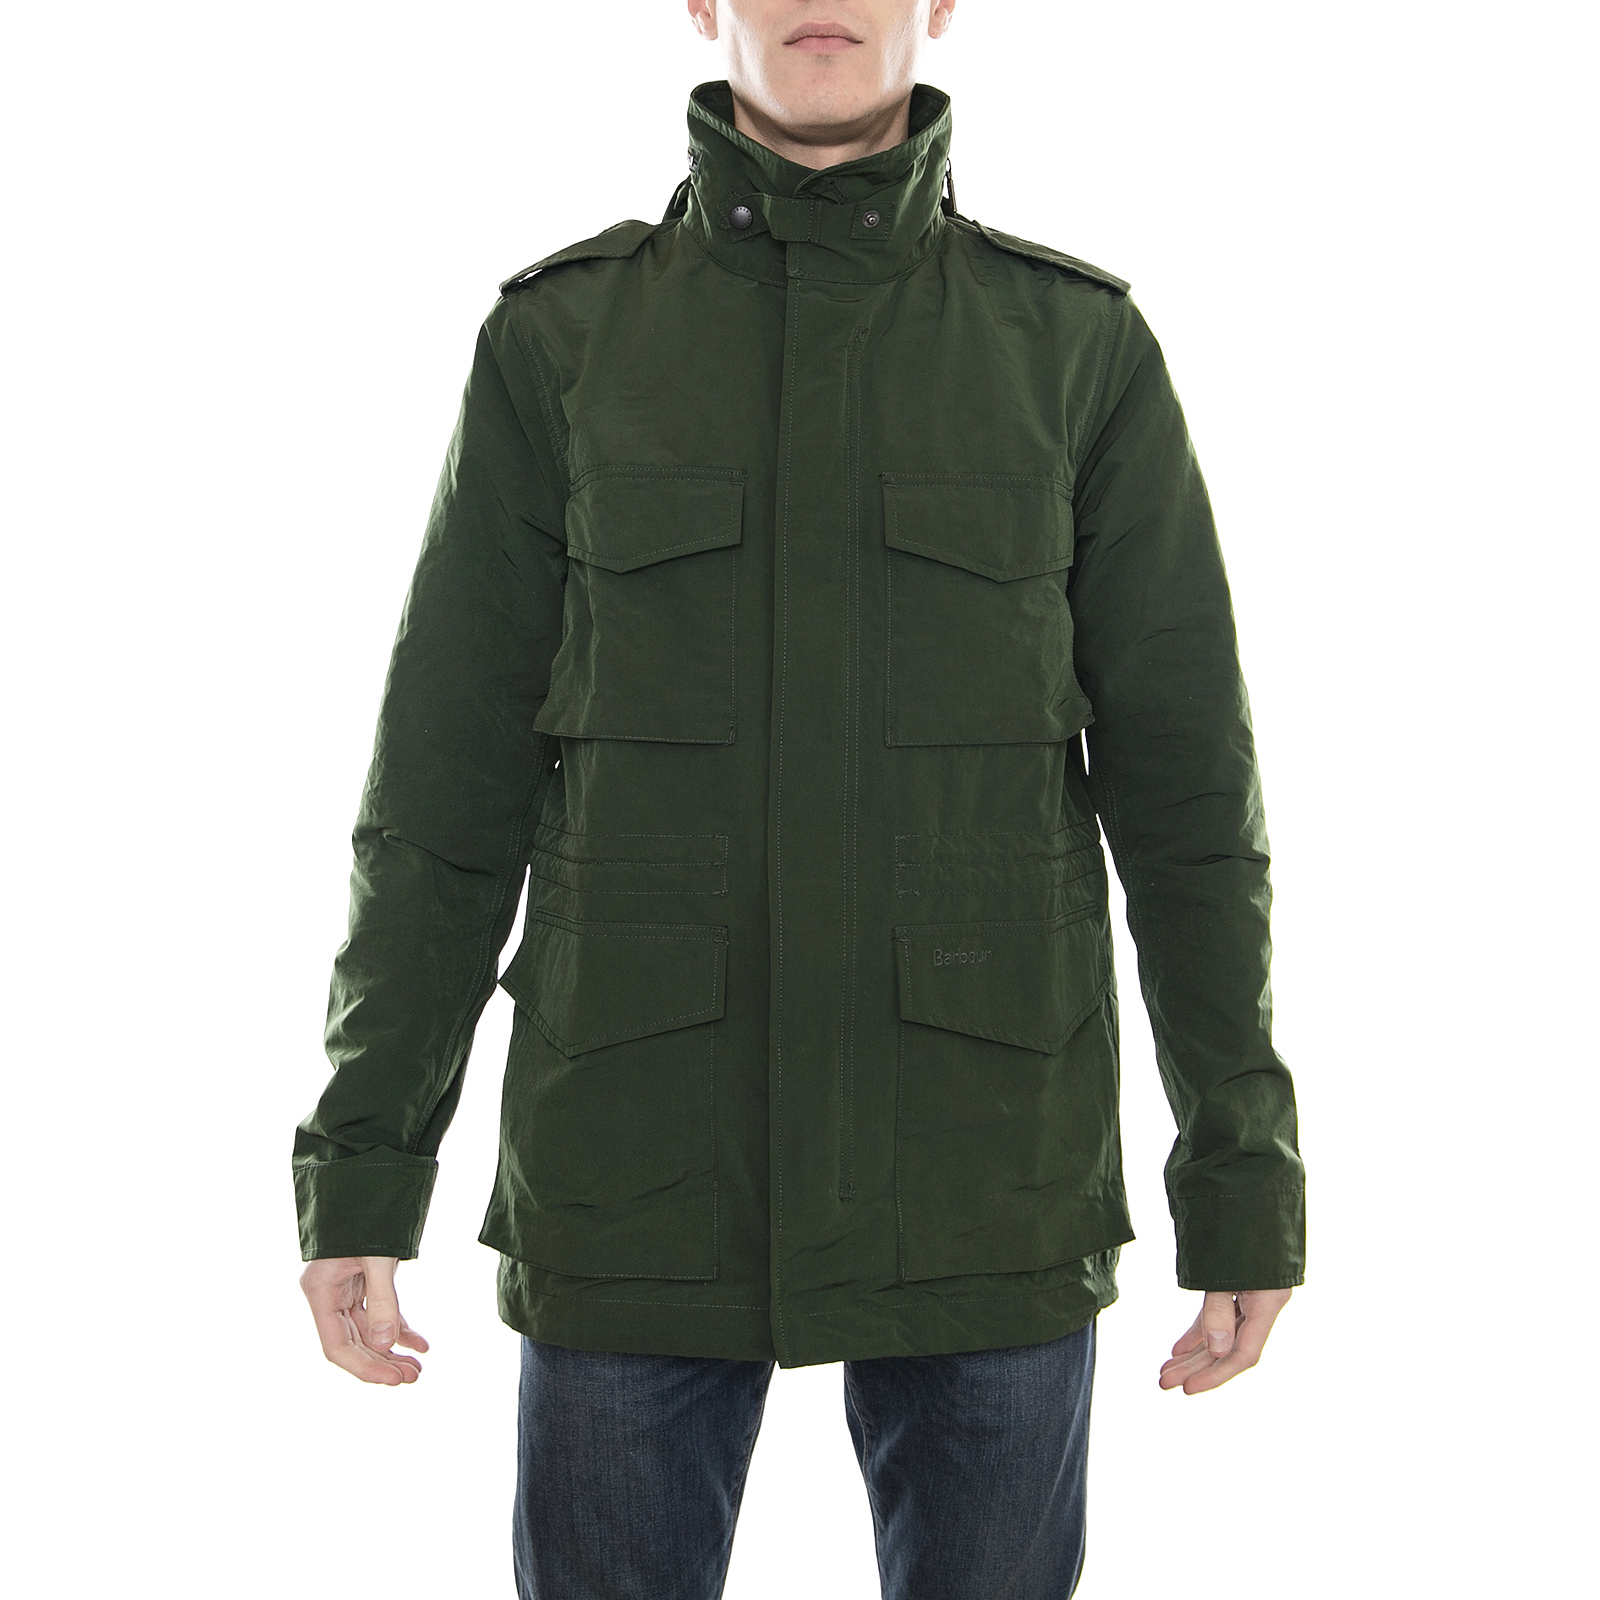 Barbour-Giacche-Barbour-Orel-Jacket-Green-Verde